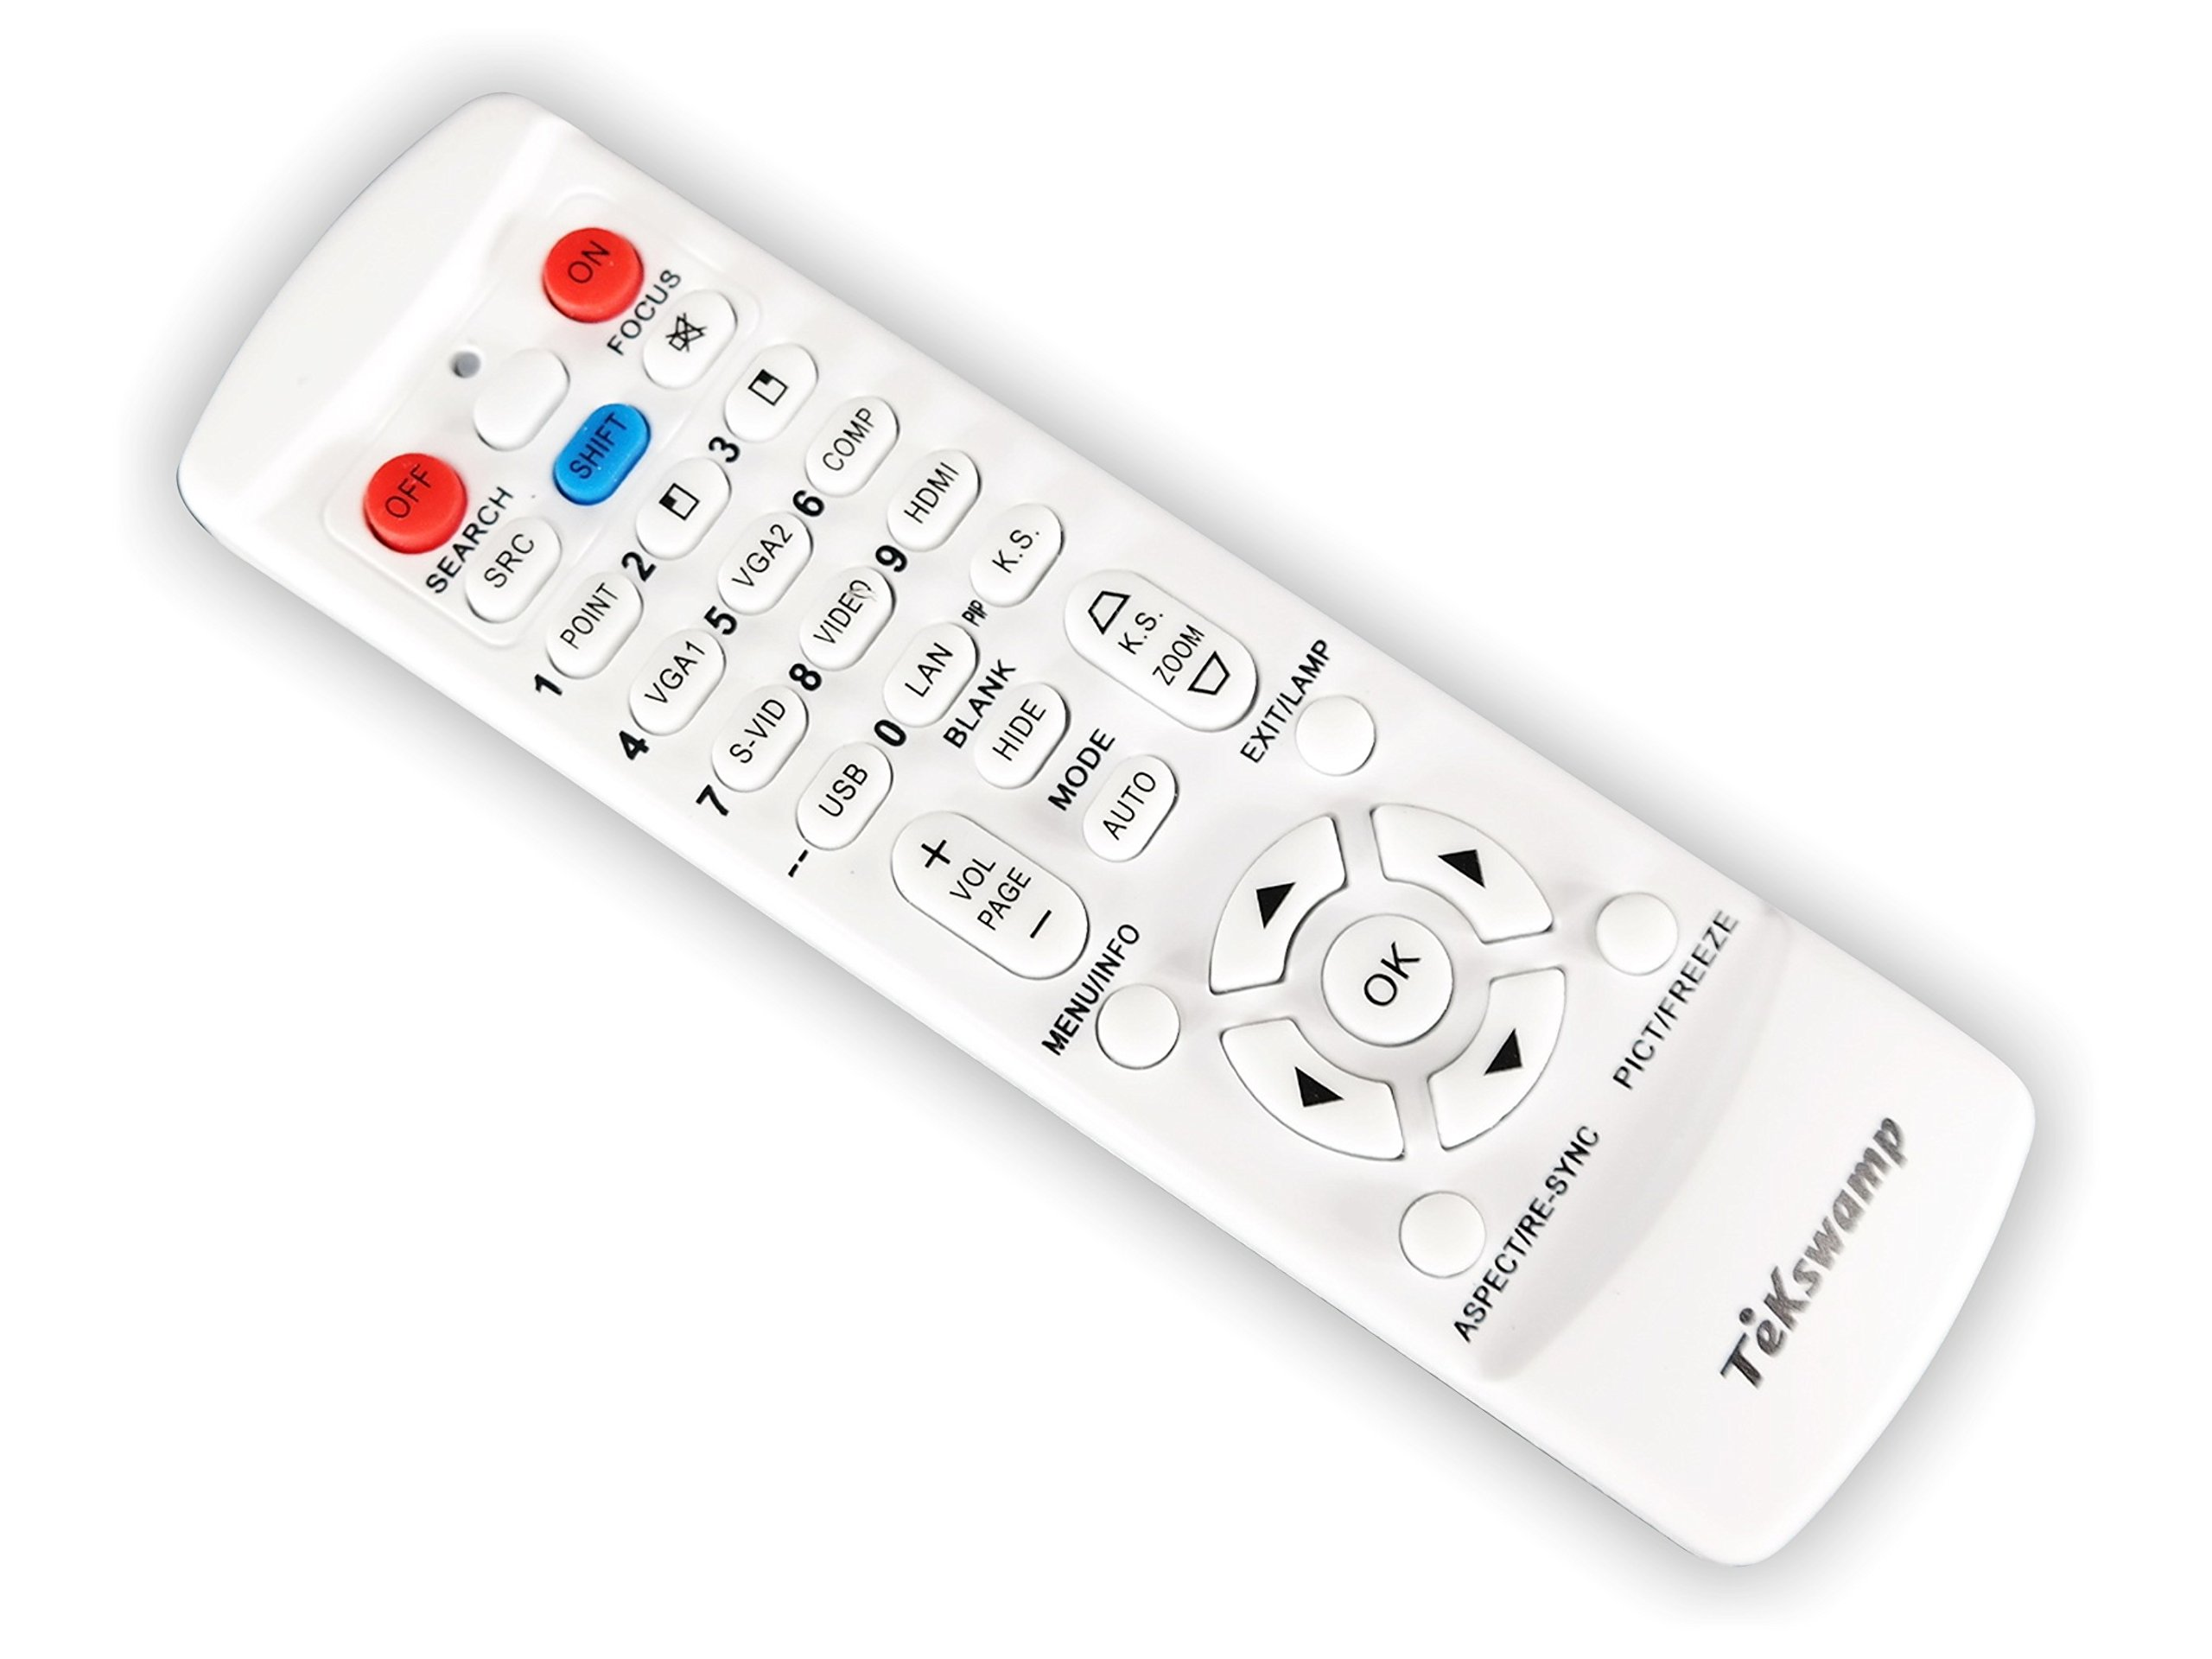 TeKswamp Video Projector Remote Control (White) for Acer P7505 by Tekswamp